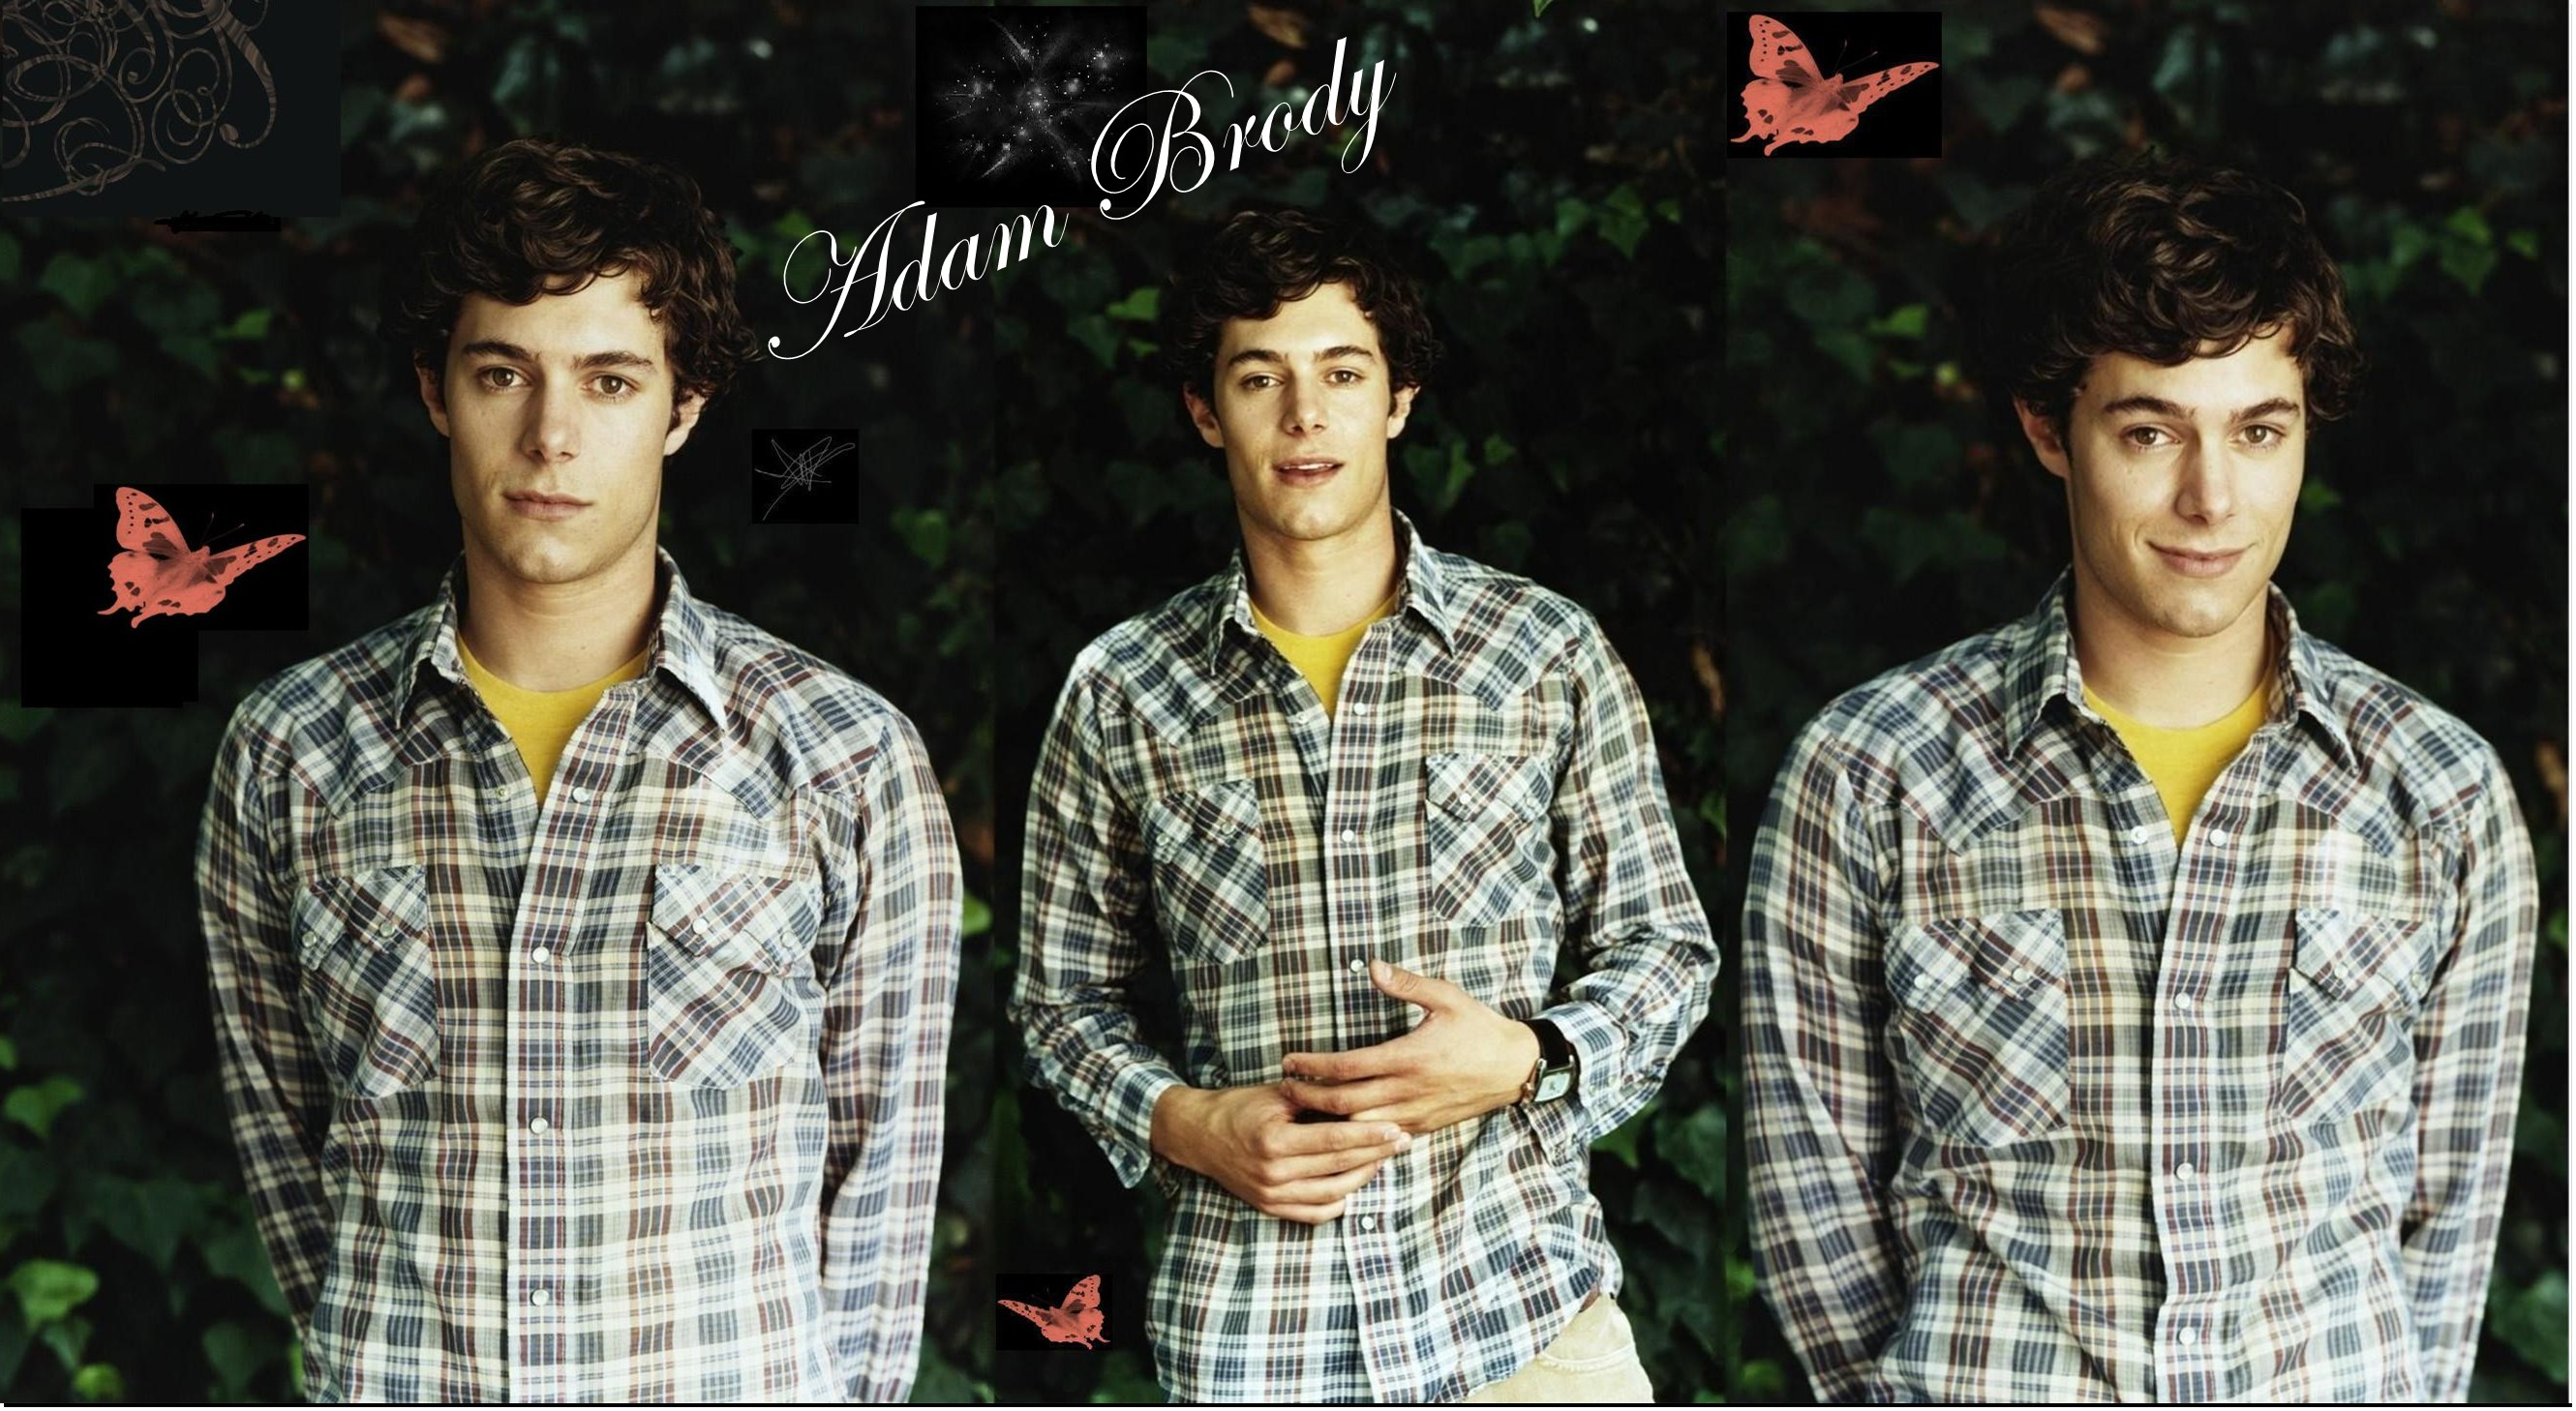 You are viewing the Adam Brody wallpaper named Adam brody 1.